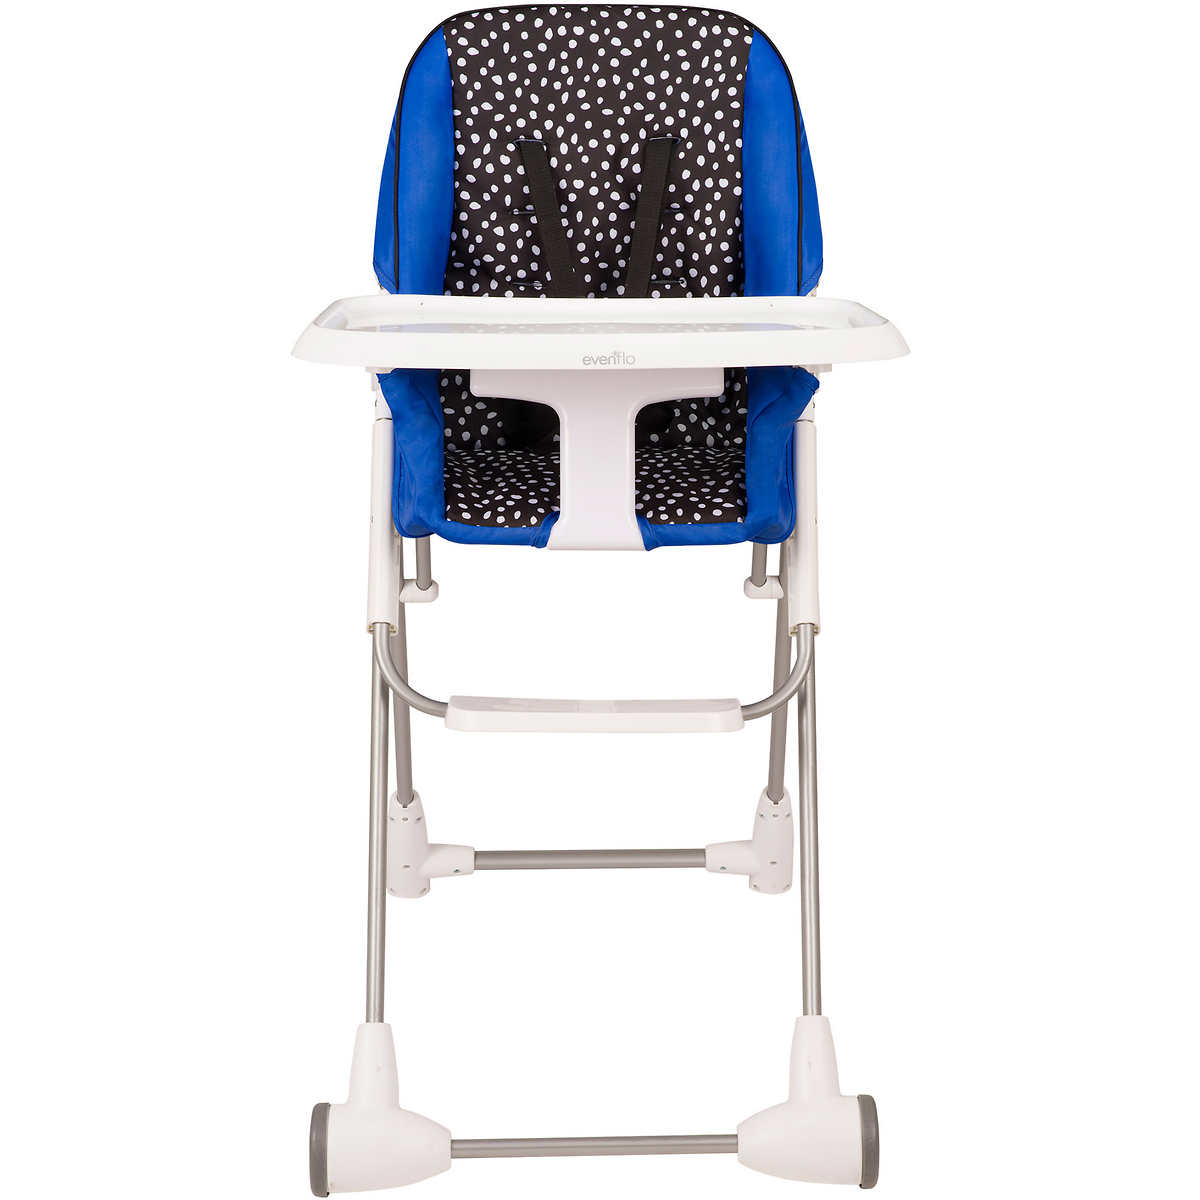 Space saver high chair boy - Evenflo Symmetry High Chair Hayden Dots